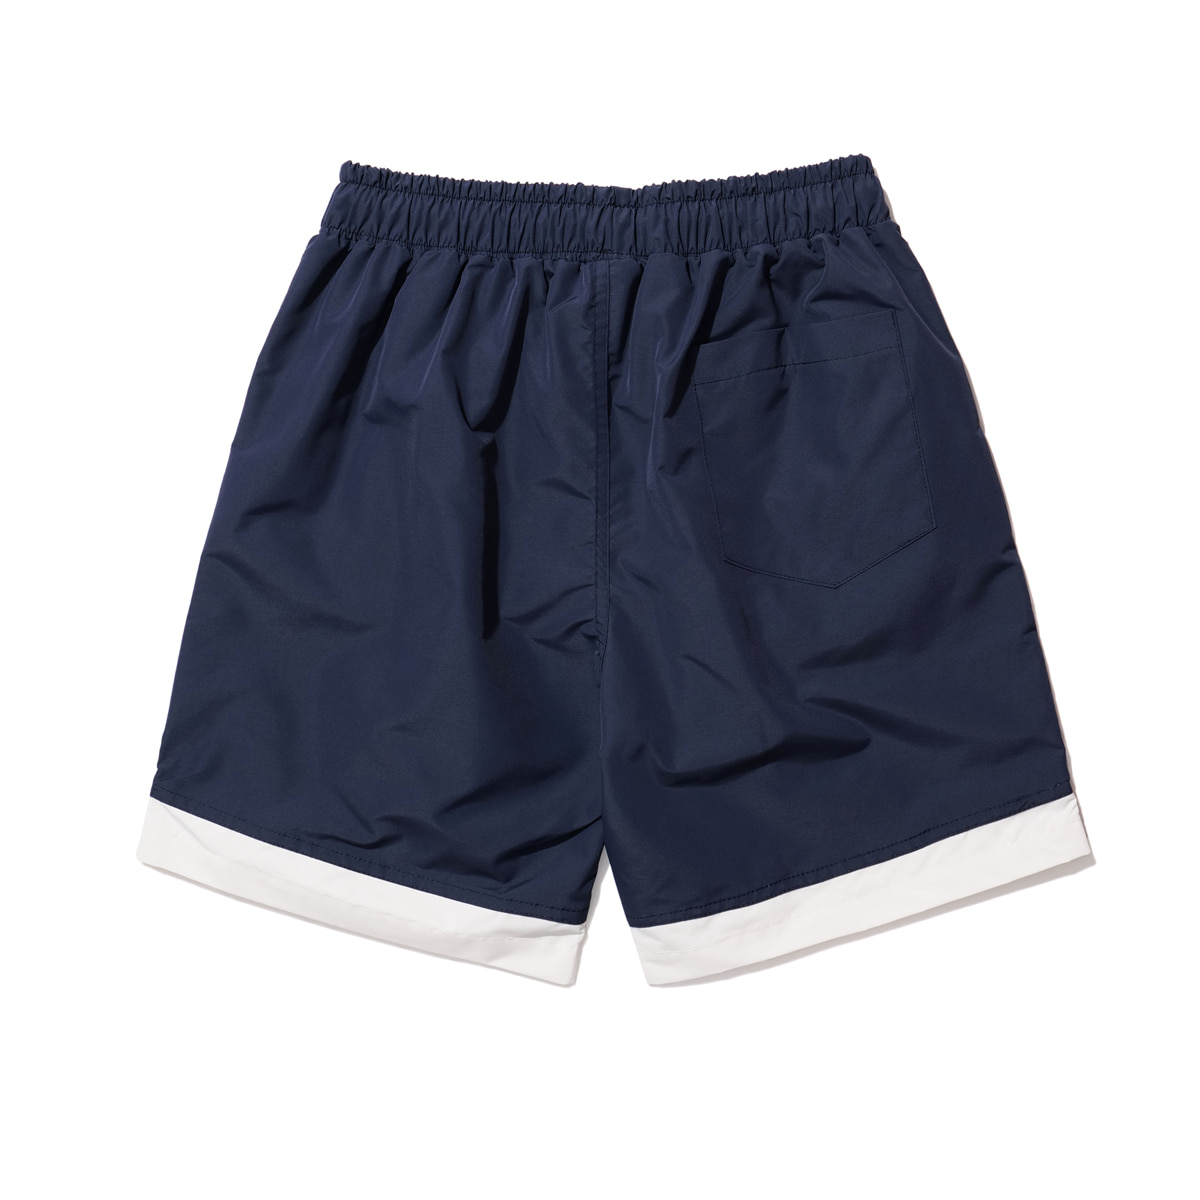 Mod01 Reflective Shorts (navy)